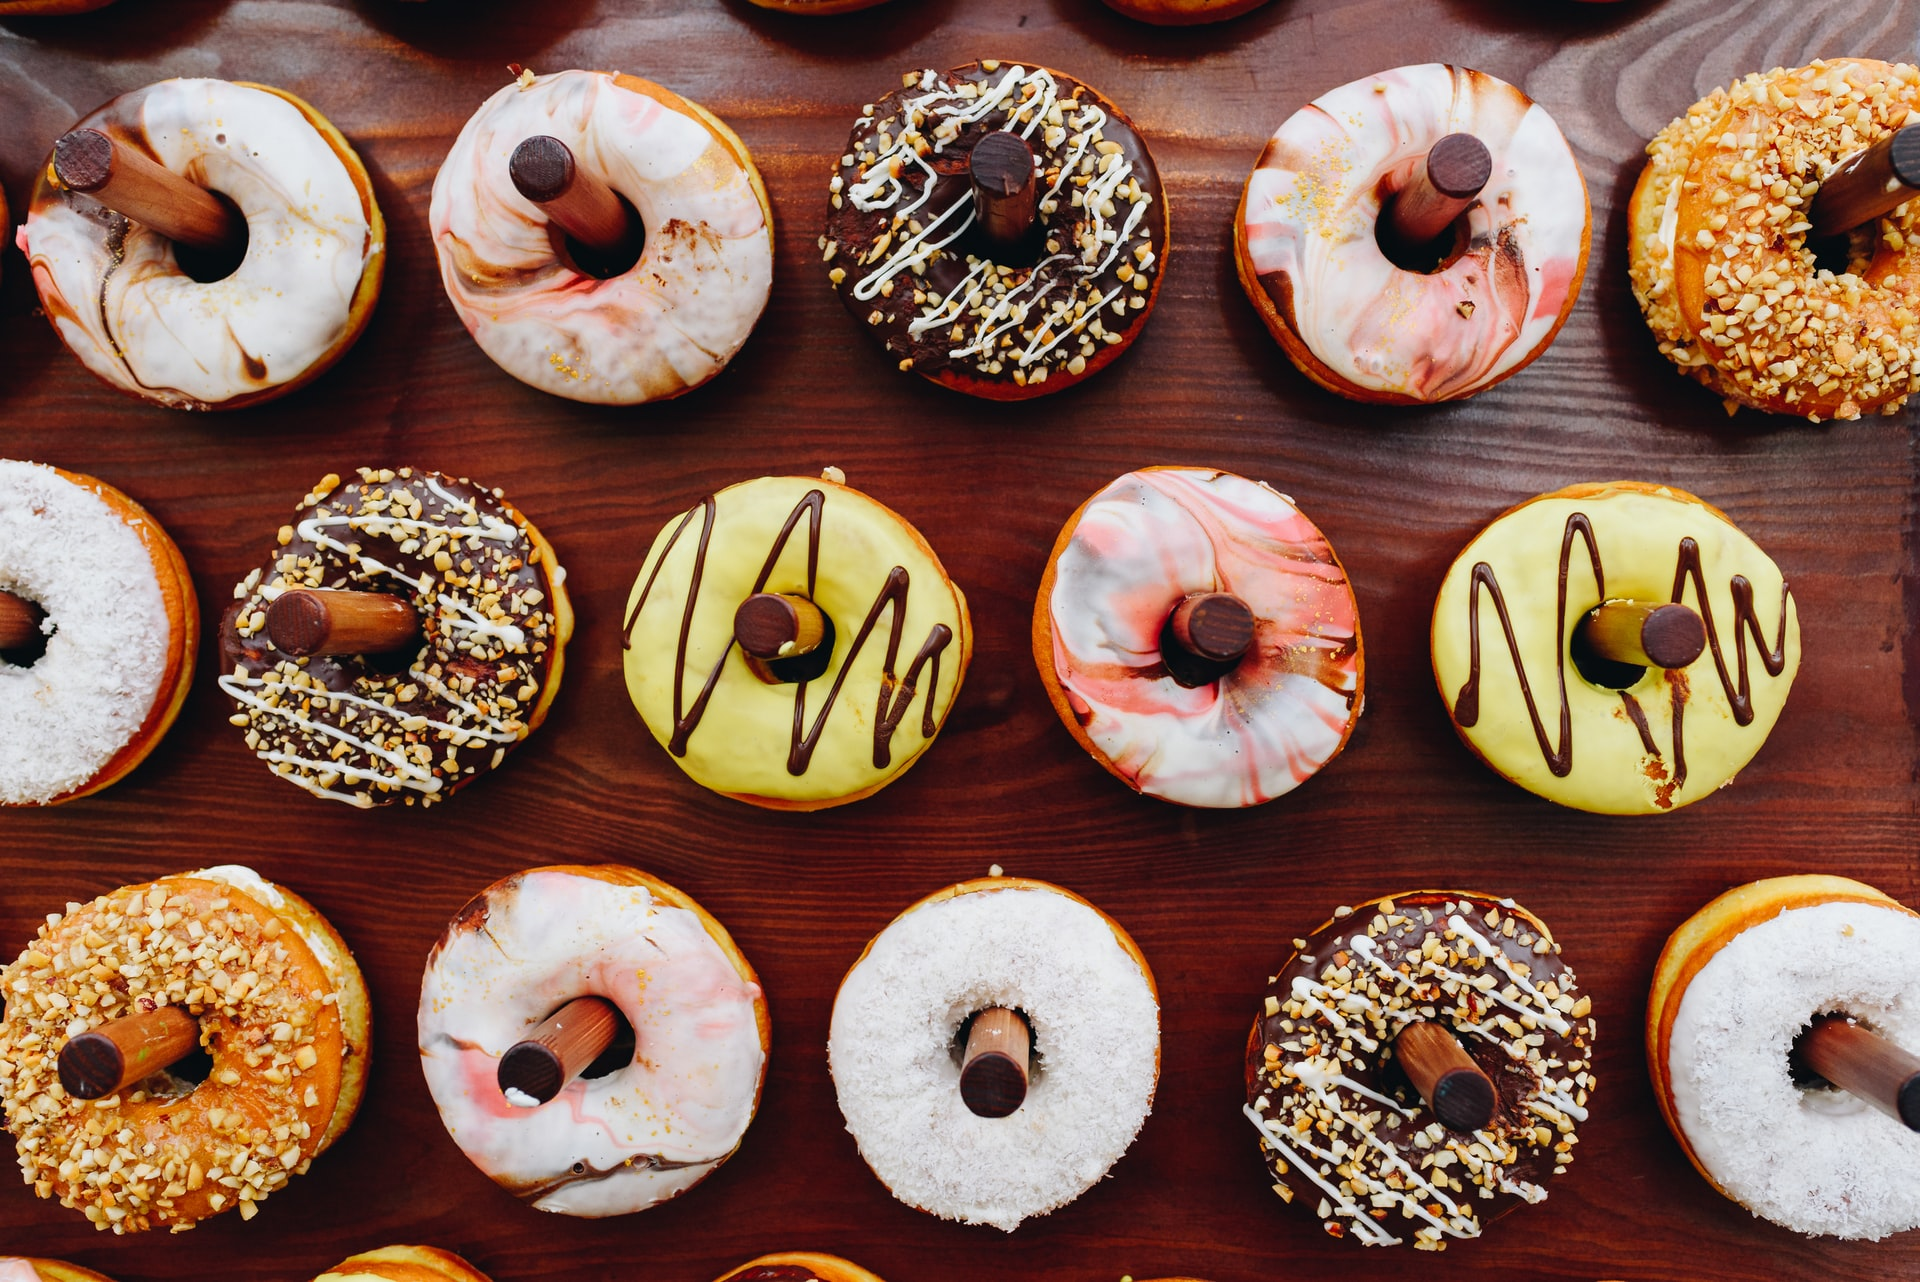 Sweet Meets Savory at Donut Villa Diner, Now Open in Cambridge